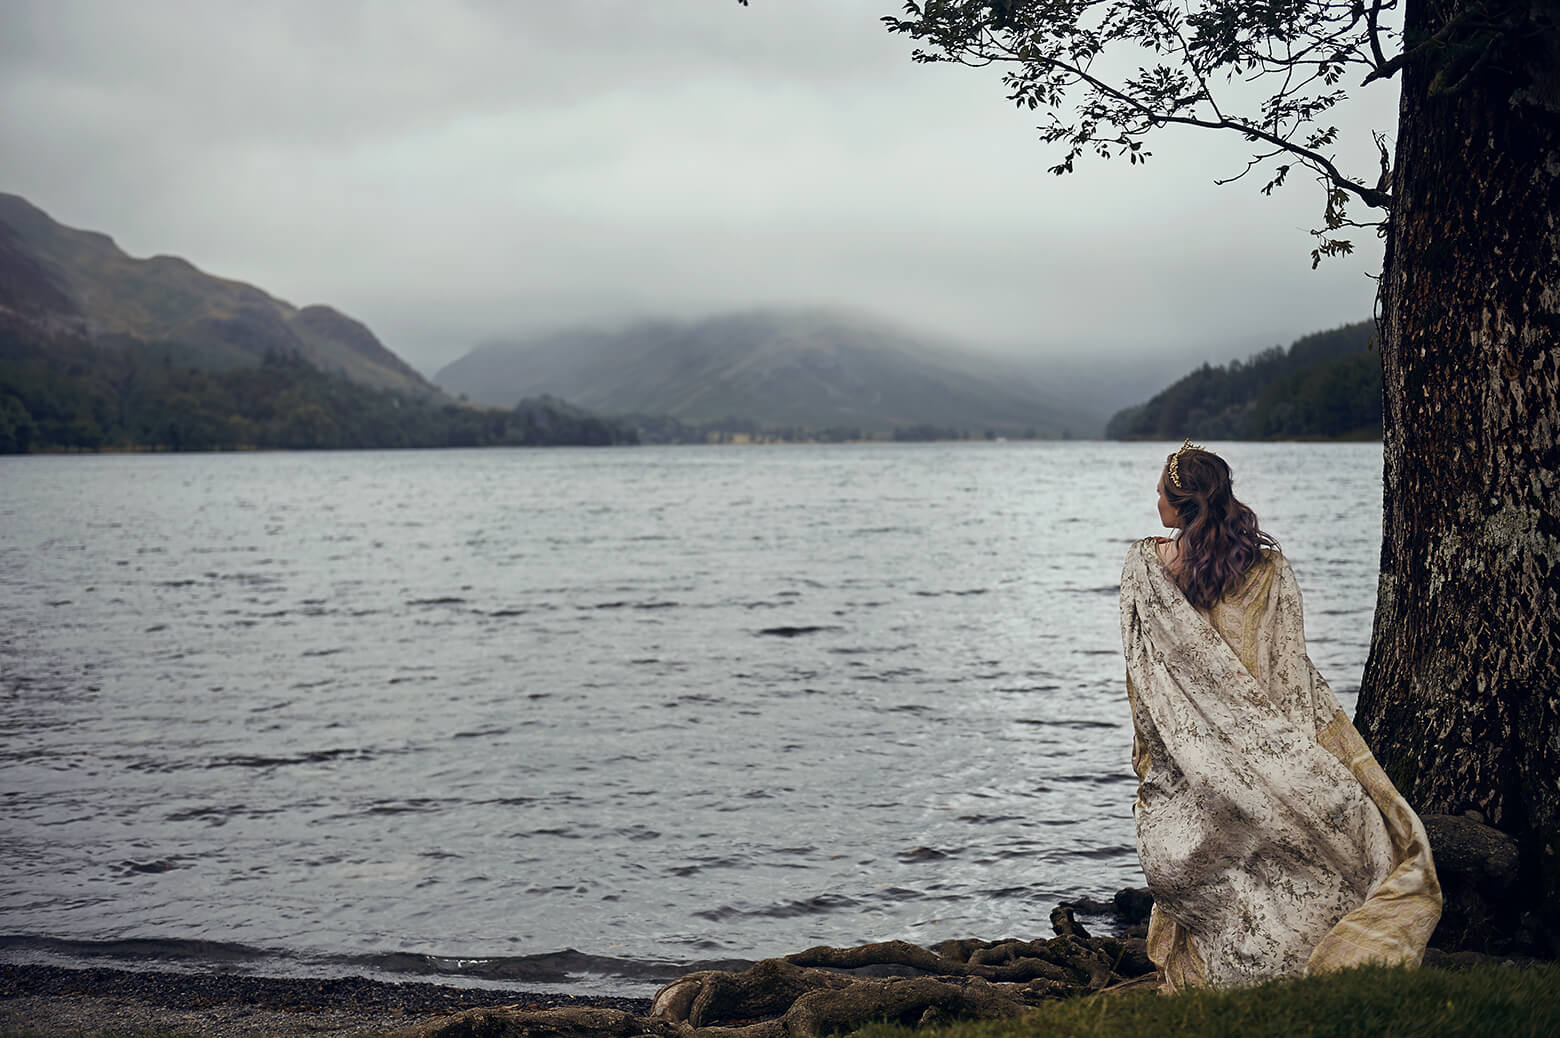 buttermere, lake district, actress, rogue management, destination photography, ursula schmitz, portrait, travel, lake, beauty, actress, Schauspielerin. fairytale, Märchen, dream photo shoot